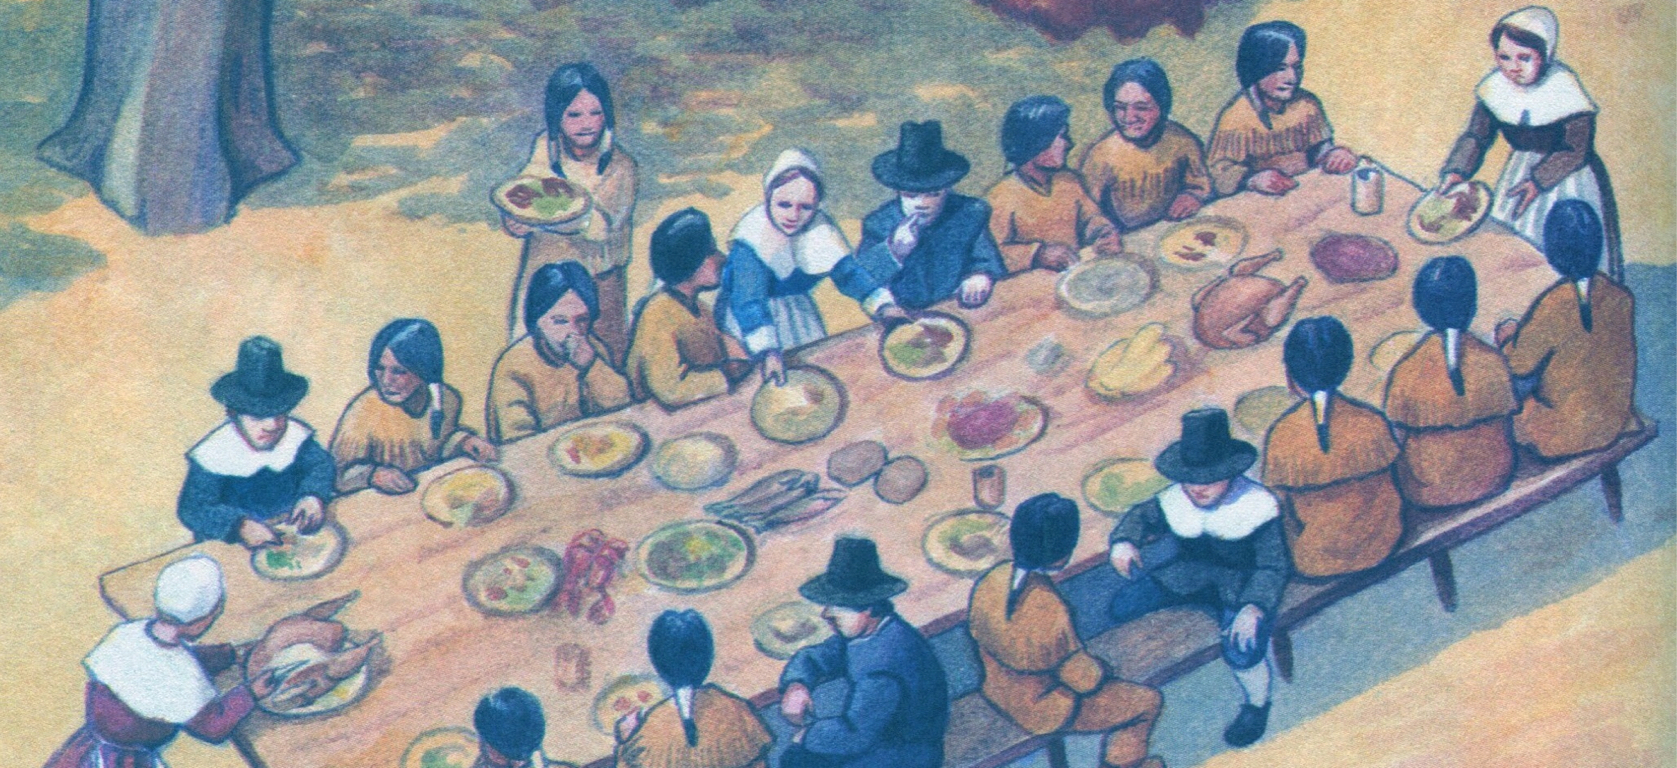 a description of thanksgiving day in the american culture Thanksgiving day thanksgiving day is a holiday celebrated by americans on the fourth thursday of november it celebrates the story of the pilgrim's meal with the native americans and is reserved as a day to spend with loved ones and for giving thanks.